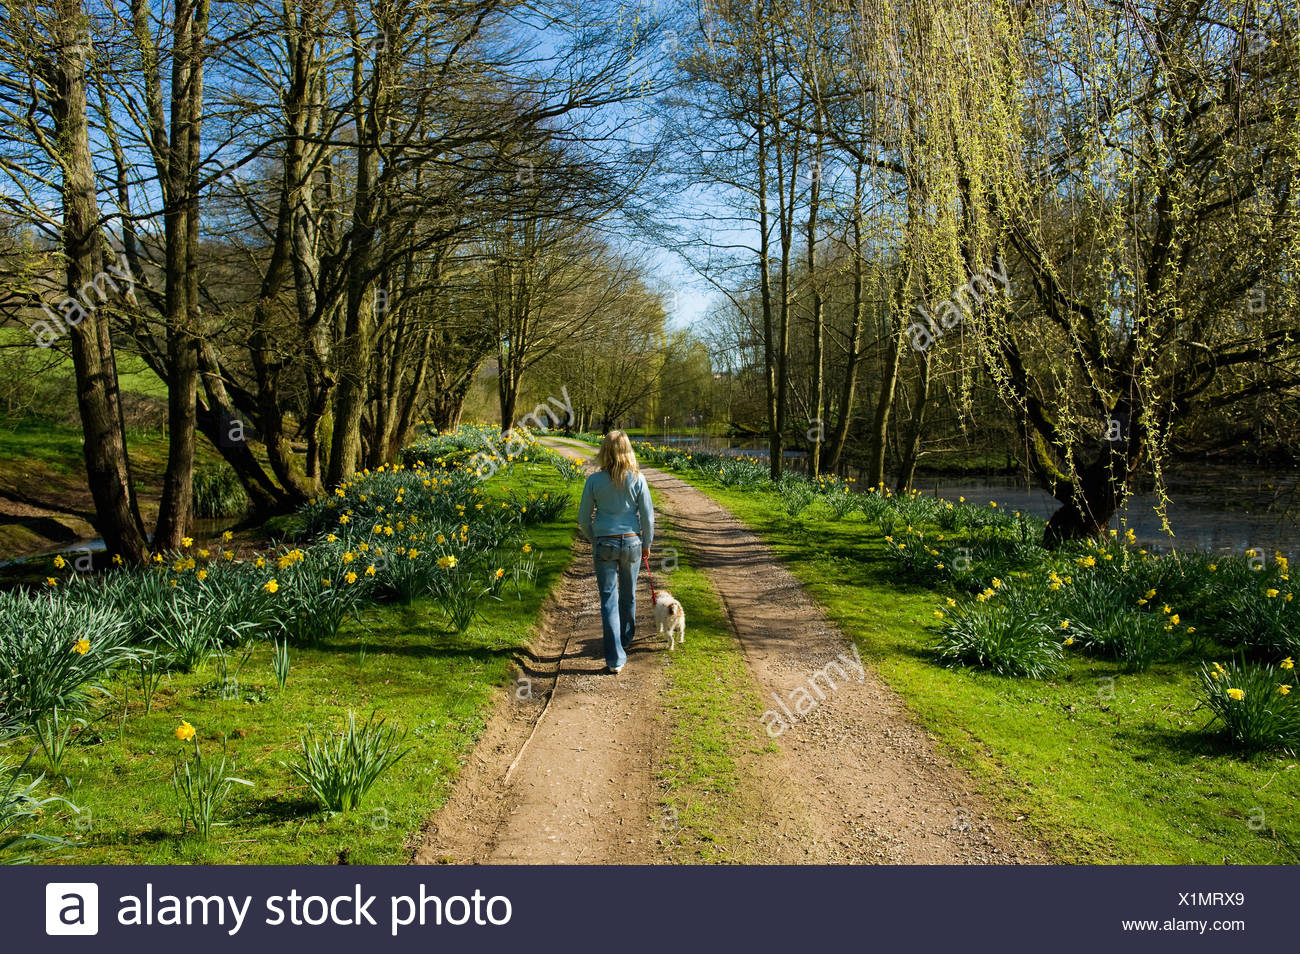 A woman and a small dog walking down a path through trees in fresh leaf. - Stock Image